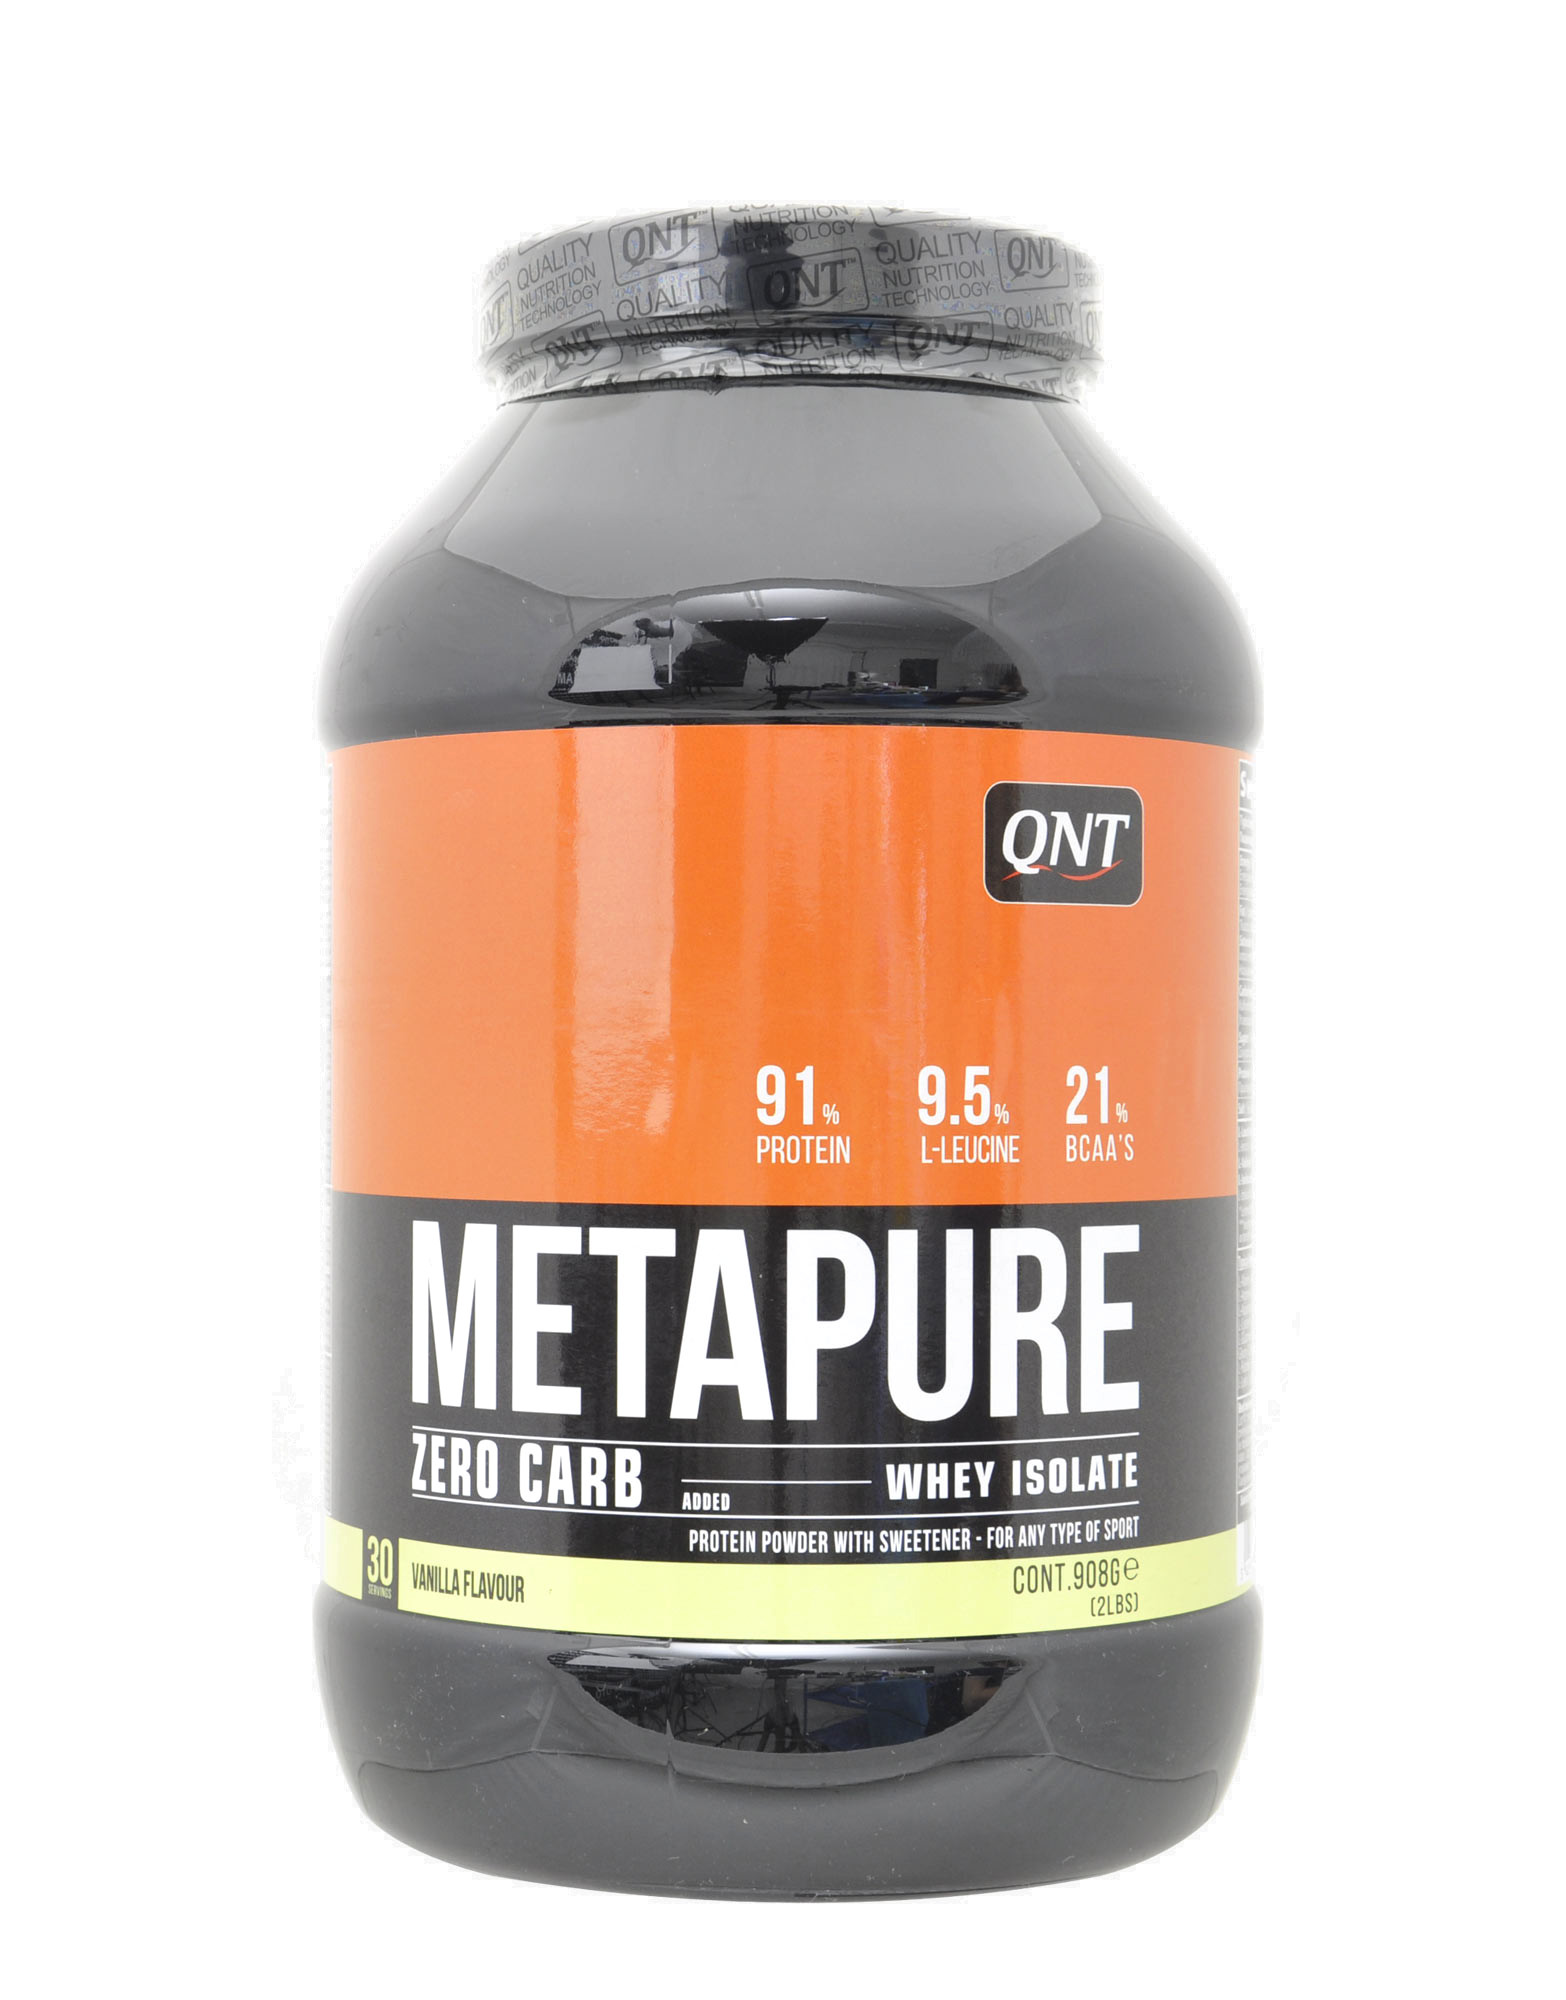 ac8a9625a Metapure Zero Carb by QNT (908 grams)